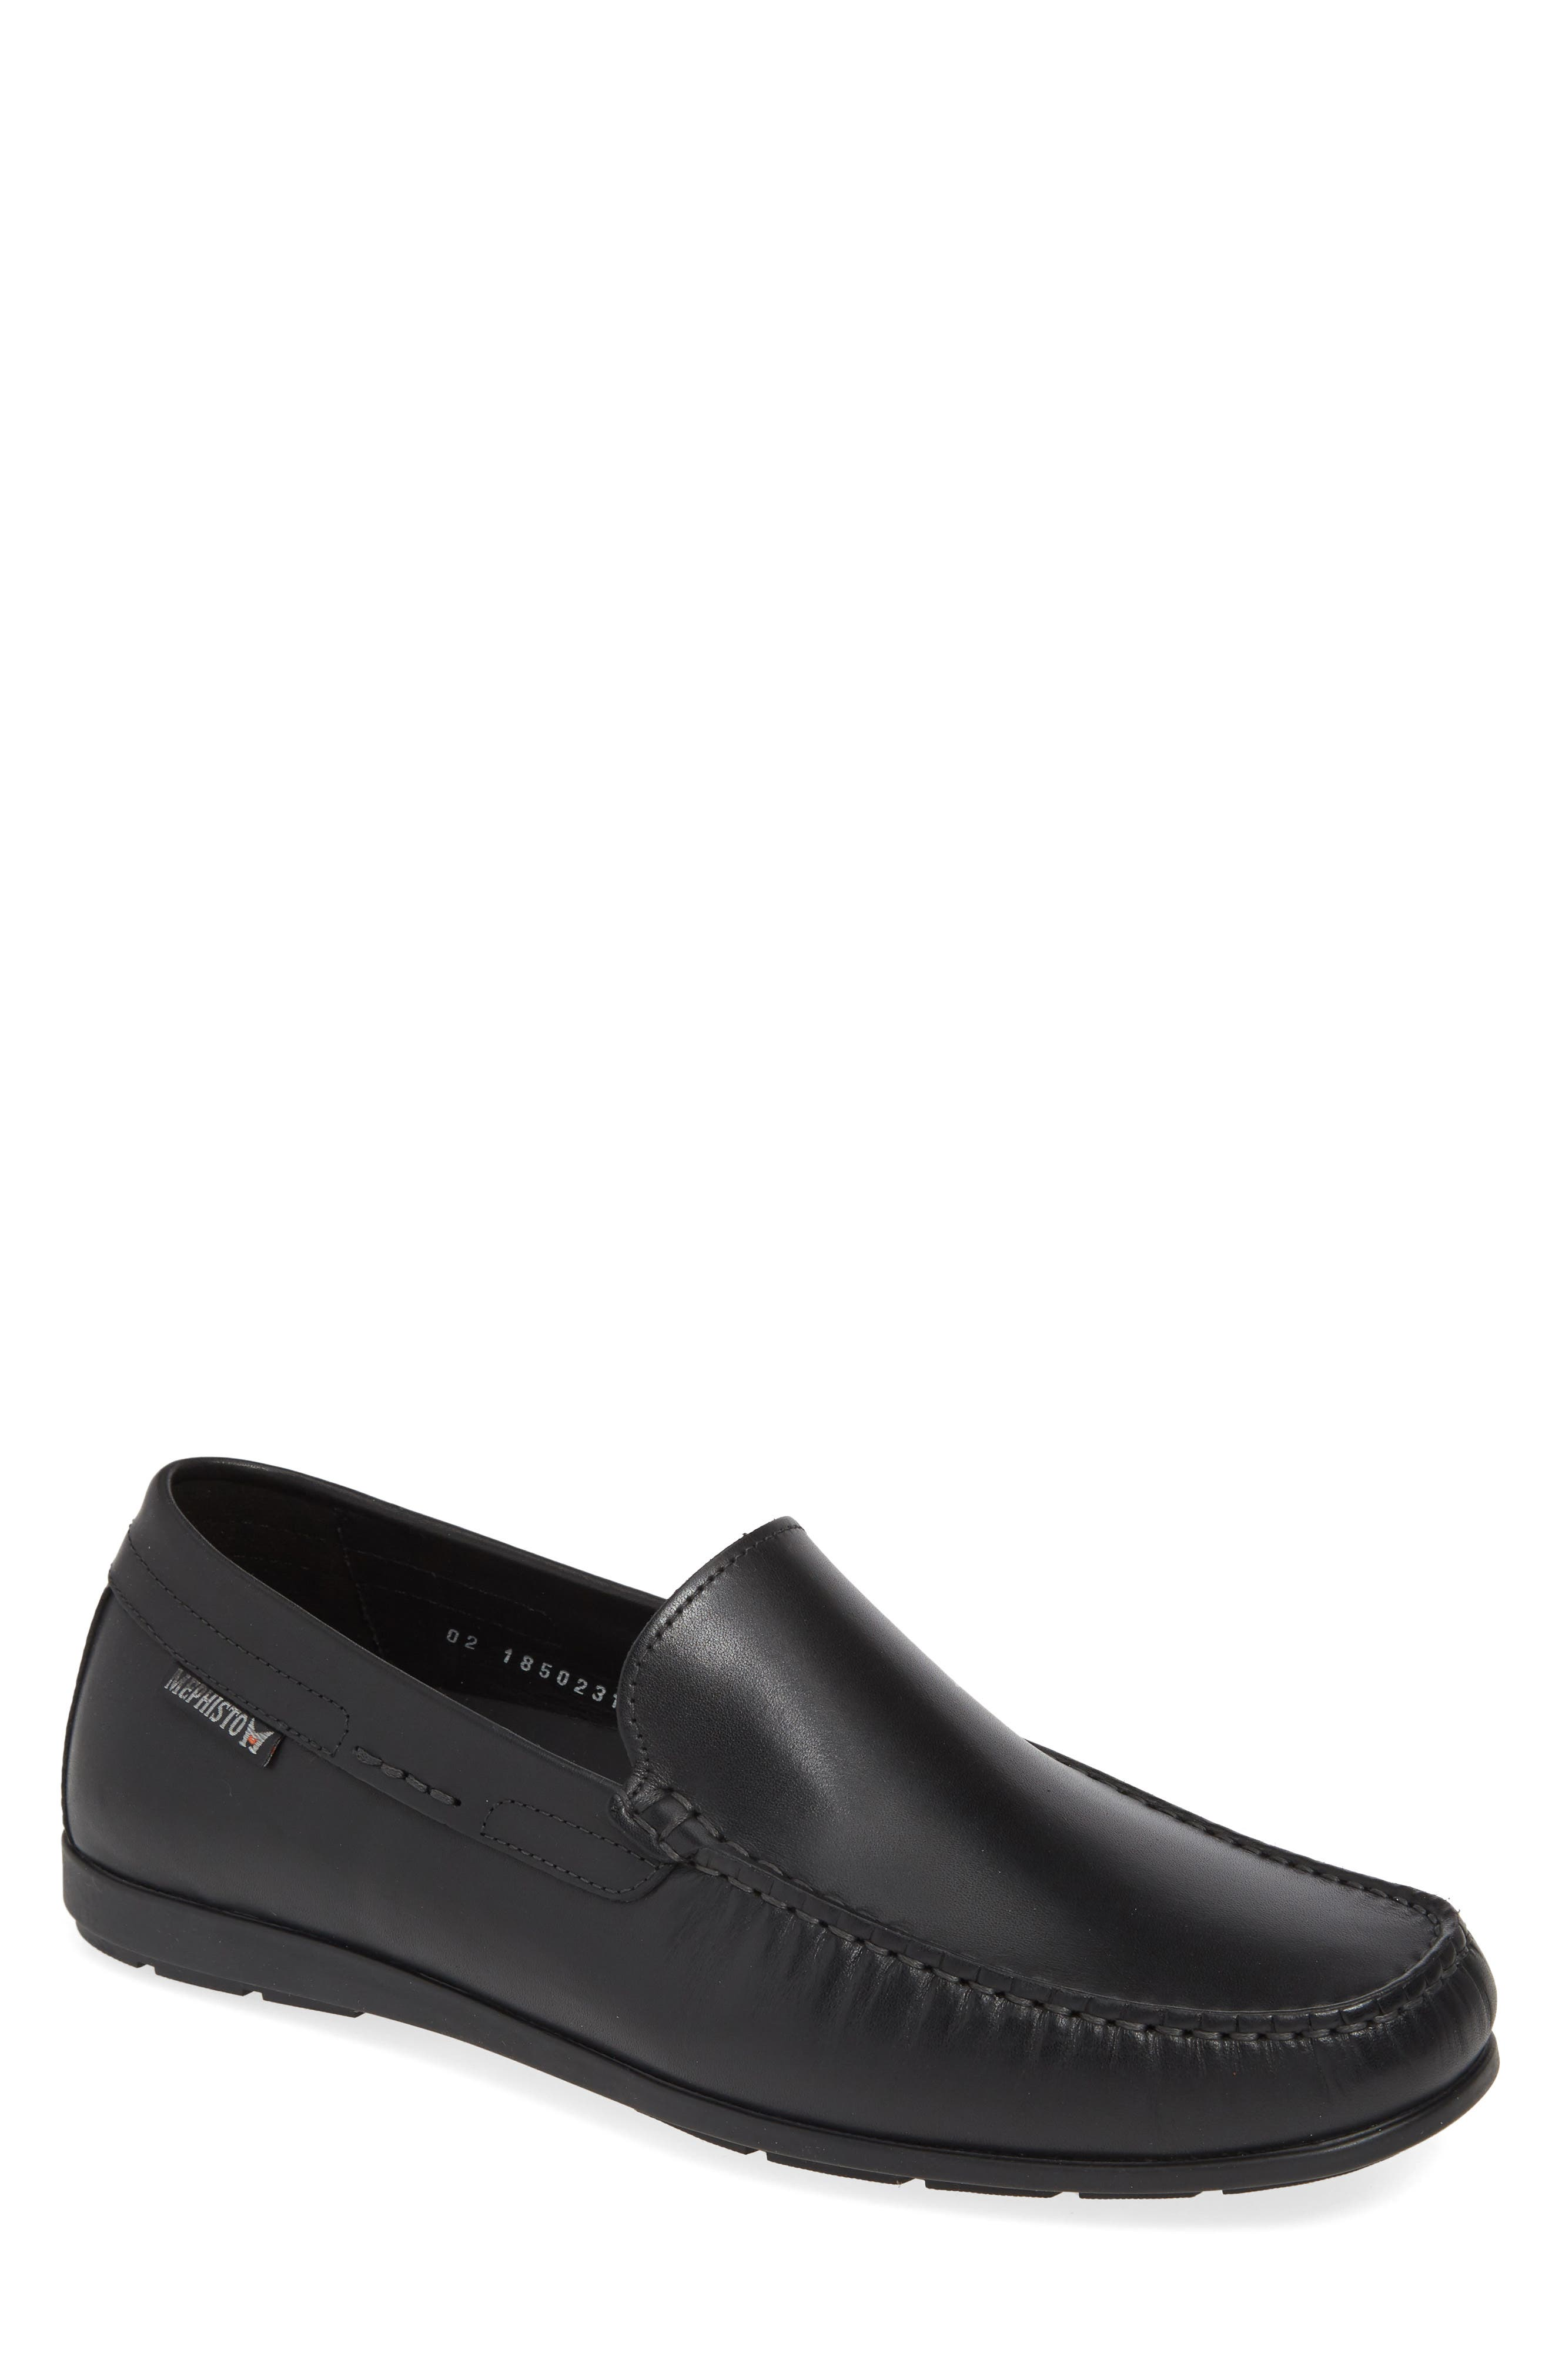 571e0862c7 Mephisto - Men's Casual Fashion Shoes and Sneakers